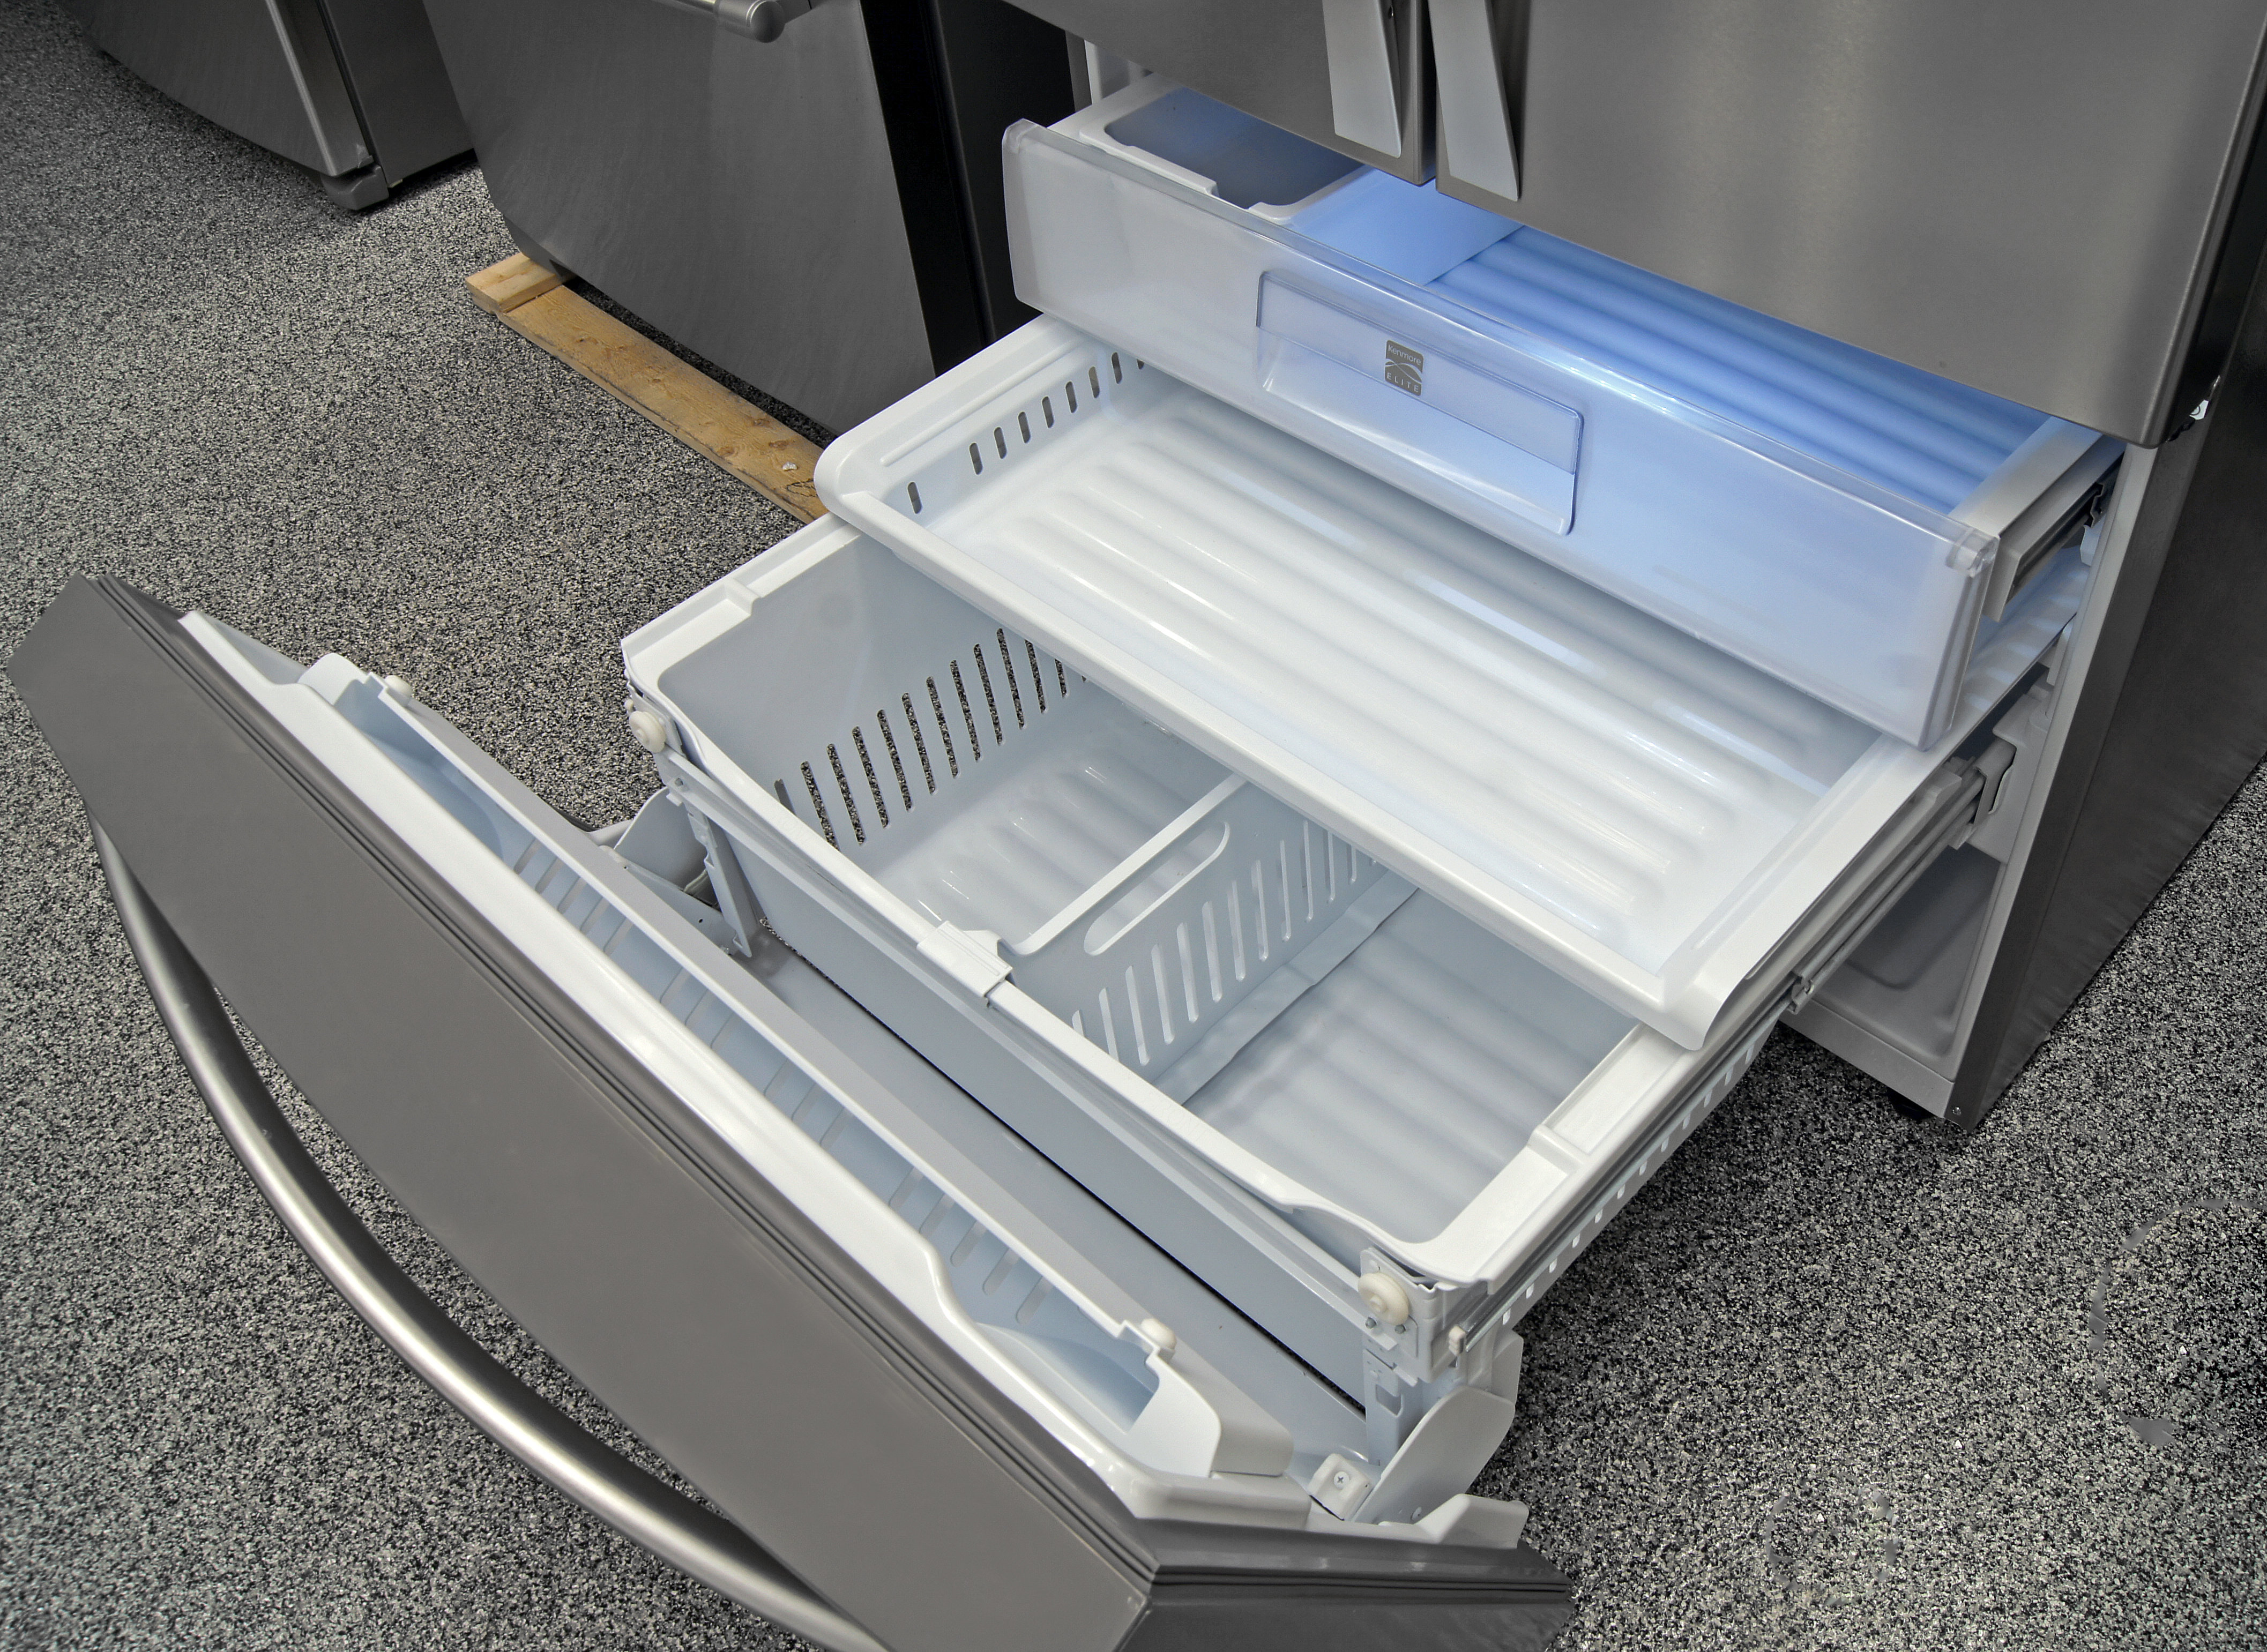 The pull-out freezer door on the Kenmore Elite 74033 tilts forward for easier access.